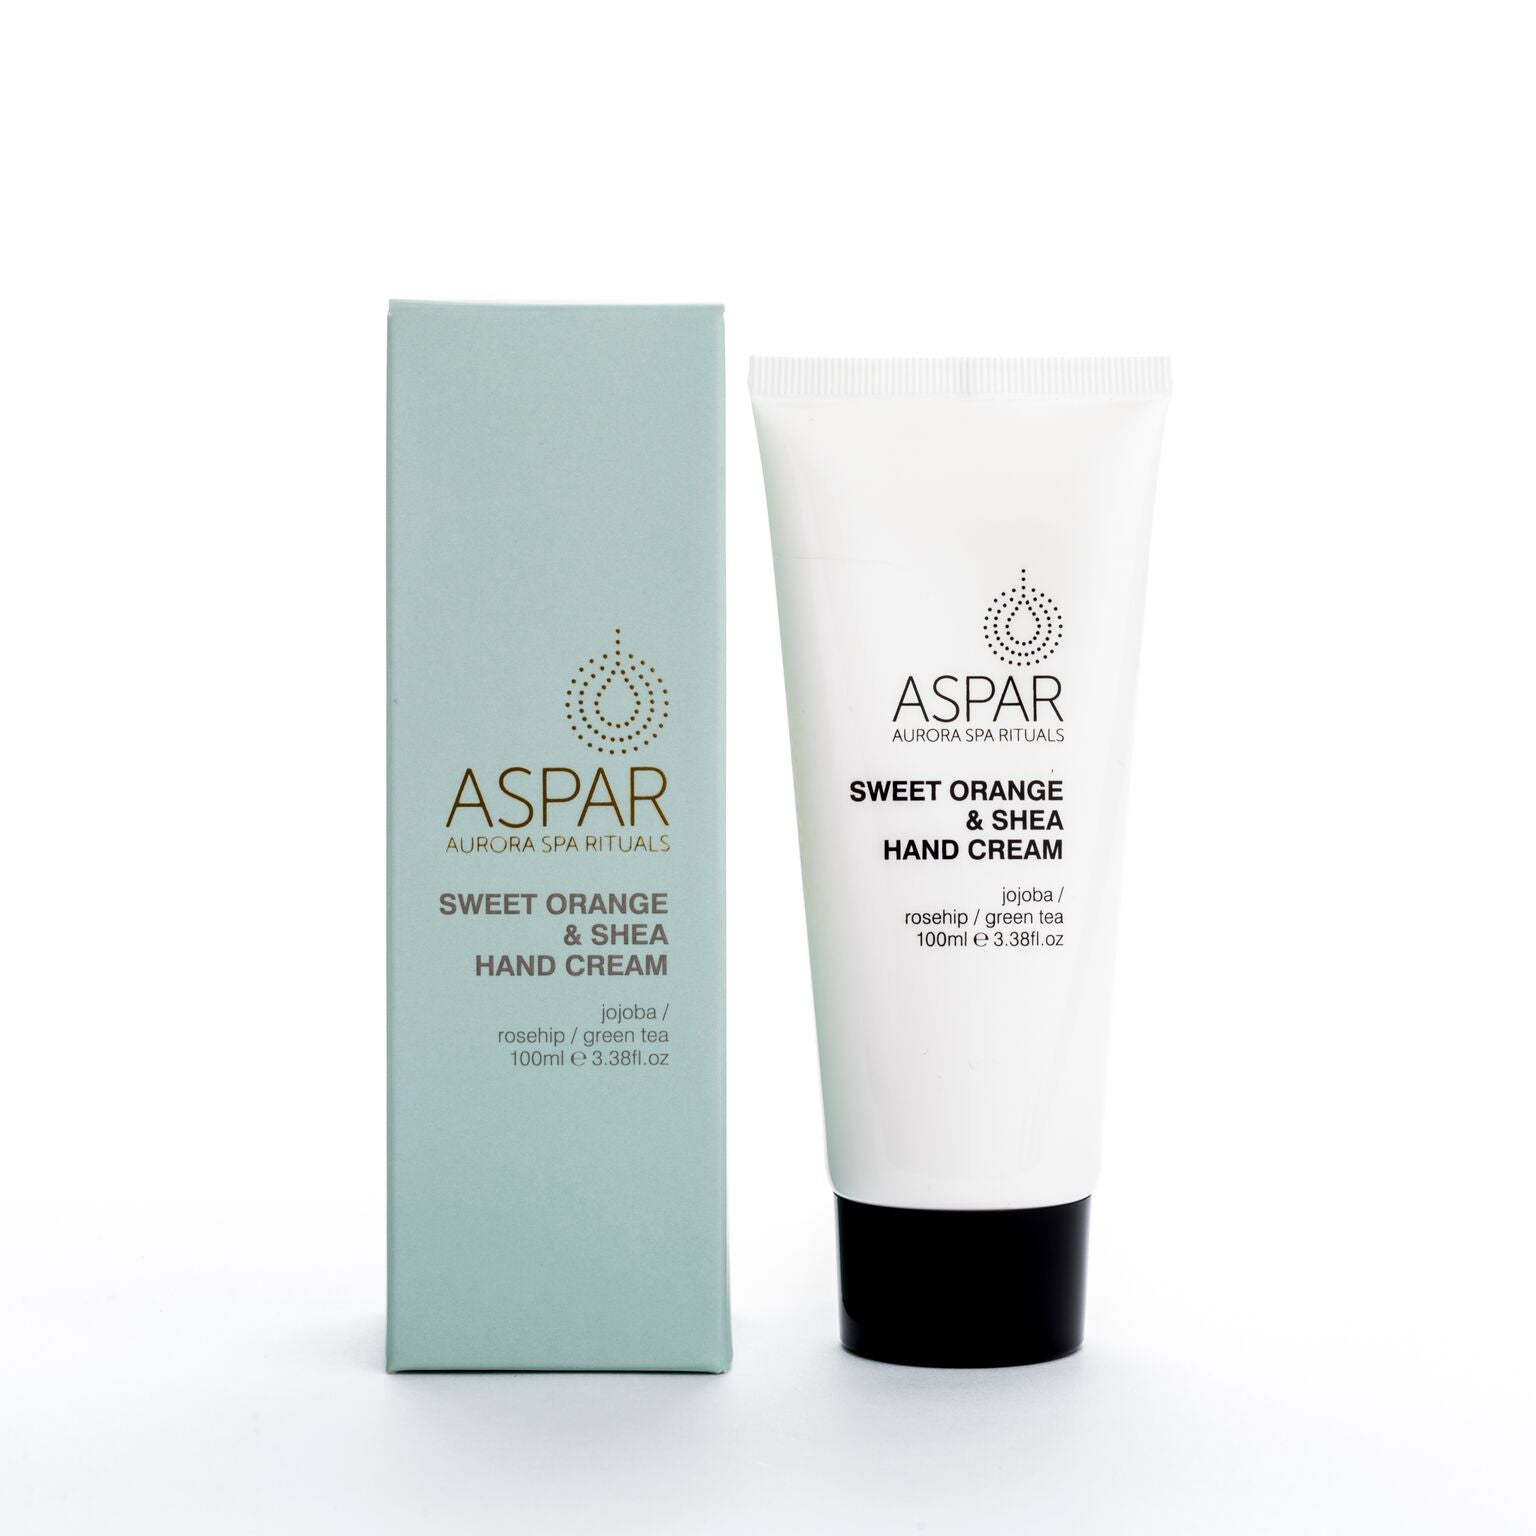 Aspar Sweet Orange & Shea Hand Cream